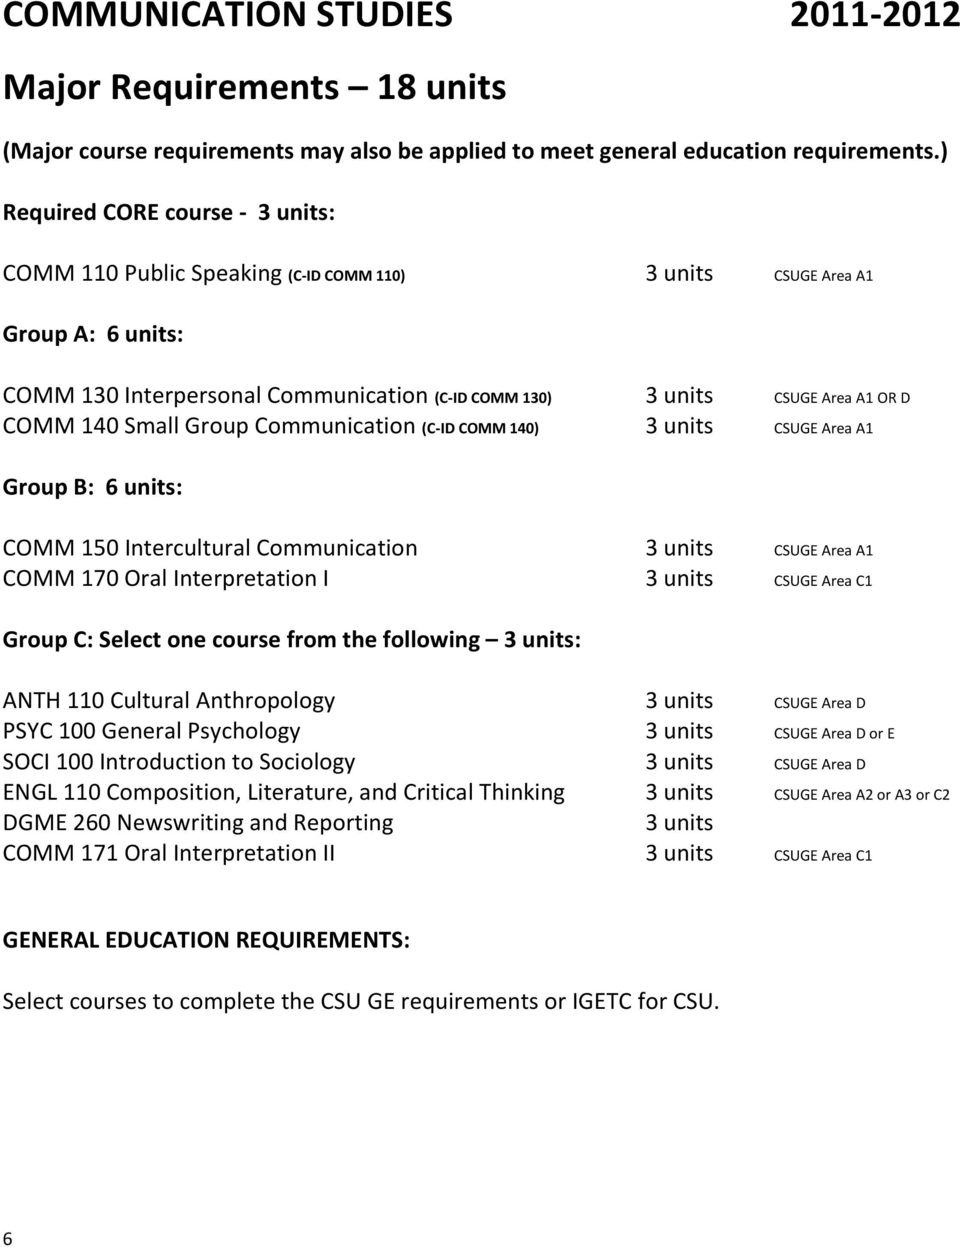 170 Oral Interpretation I CSUGE Area C1 Group C: Select one course from the following : ANTH 110 Cultural Anthropology CSUGE Area D PSYC 100 General Psychology CSUGE Area D or E SOCI 100